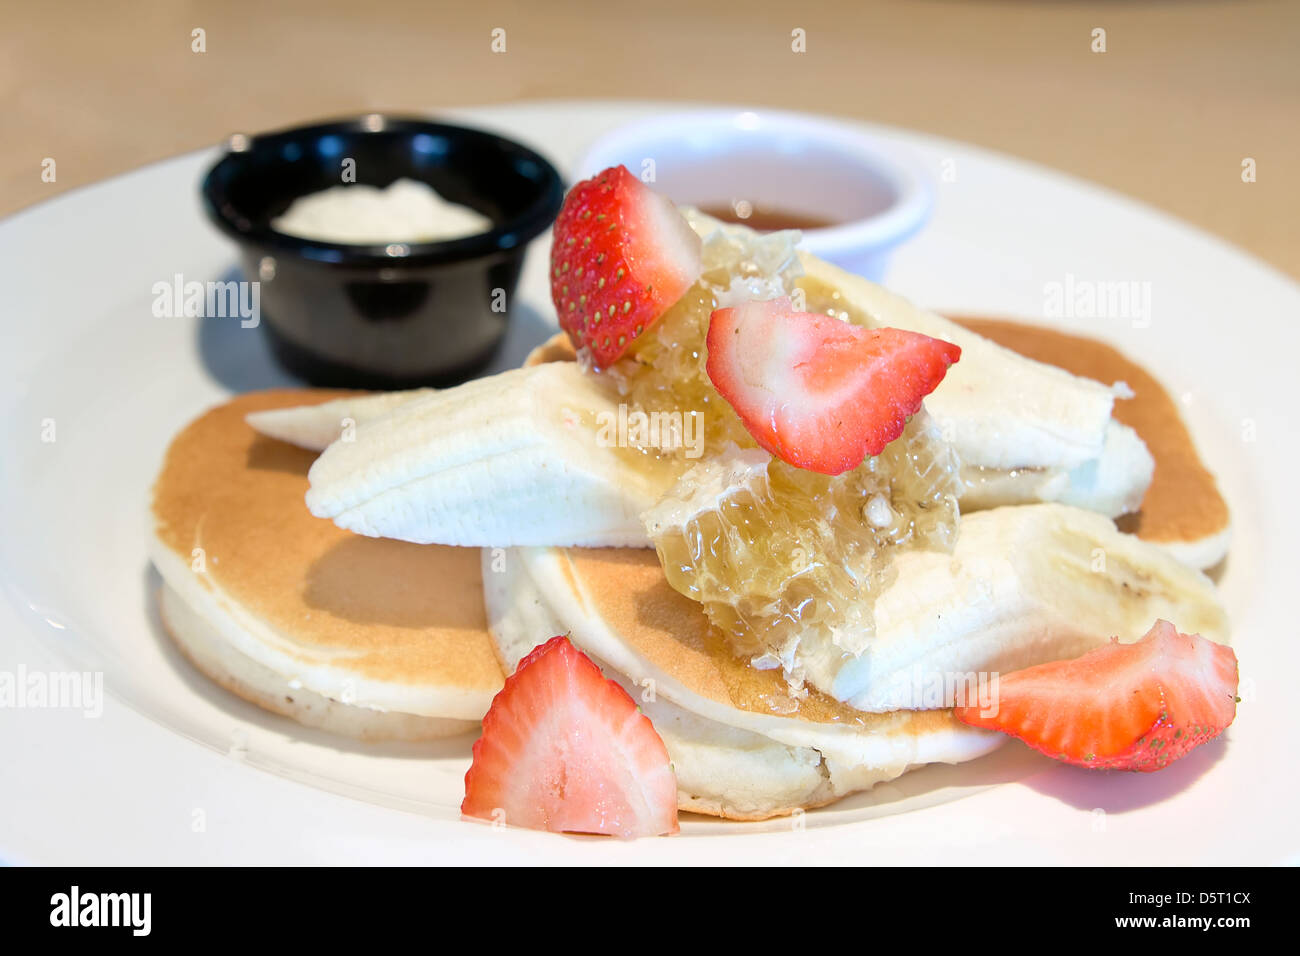 Pancakes with Bananas Strawberries Honeycomb Maple Syrup and Butter Closeup - Stock Image